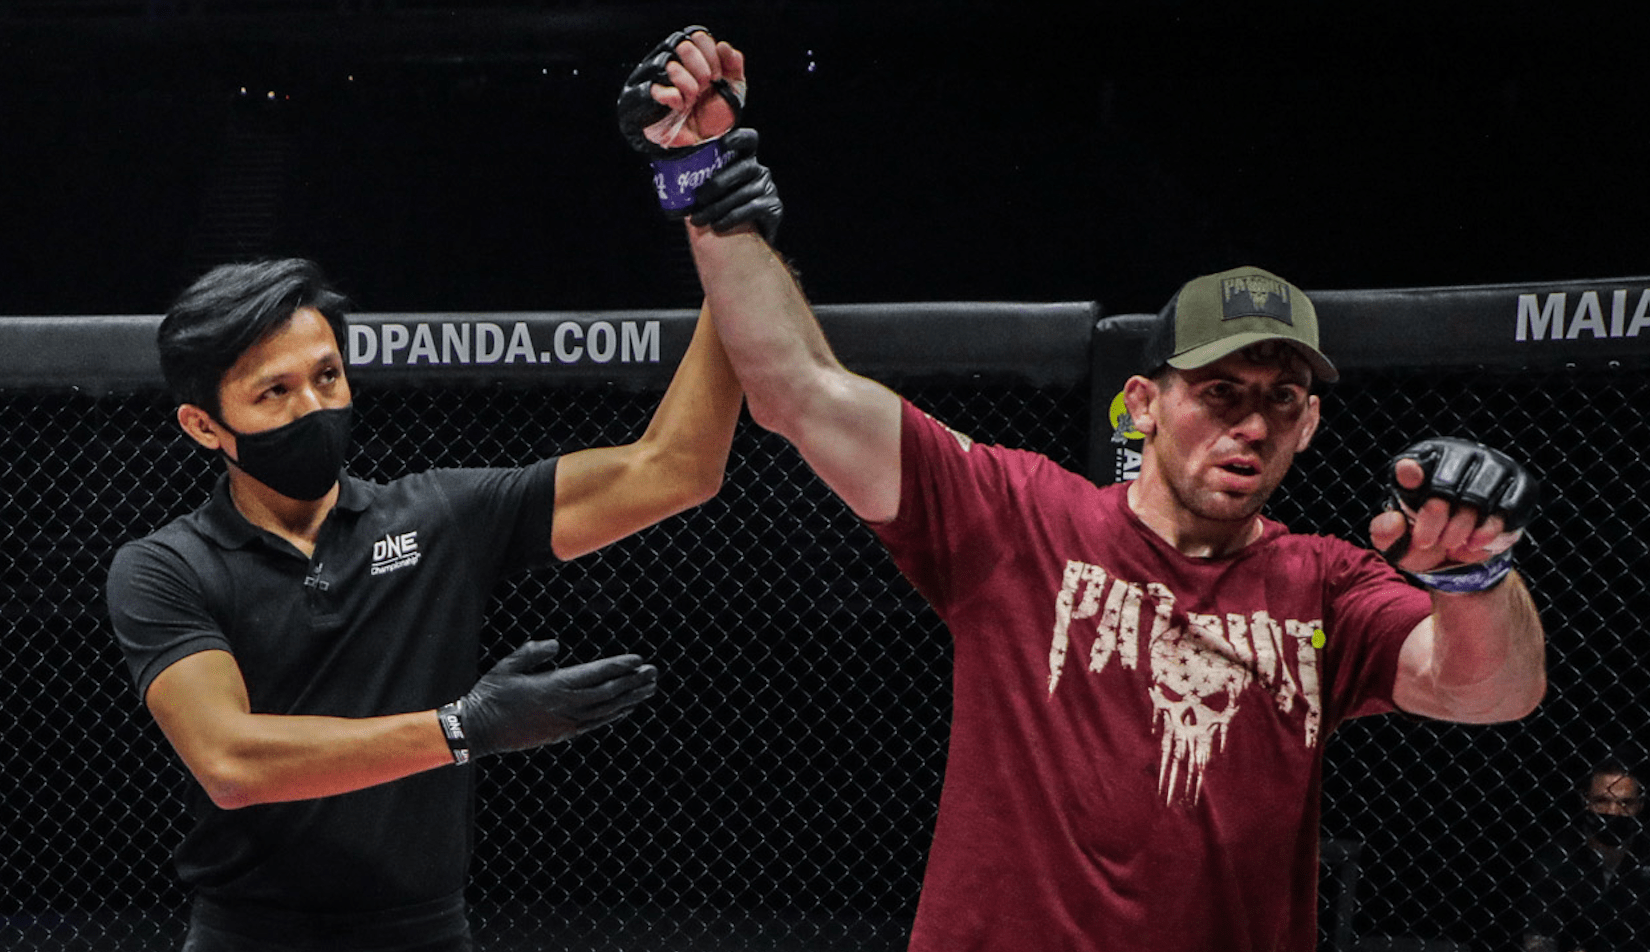 Tyler McGuire Eyes Title Shot With Win Over Raimond Magomedaliev